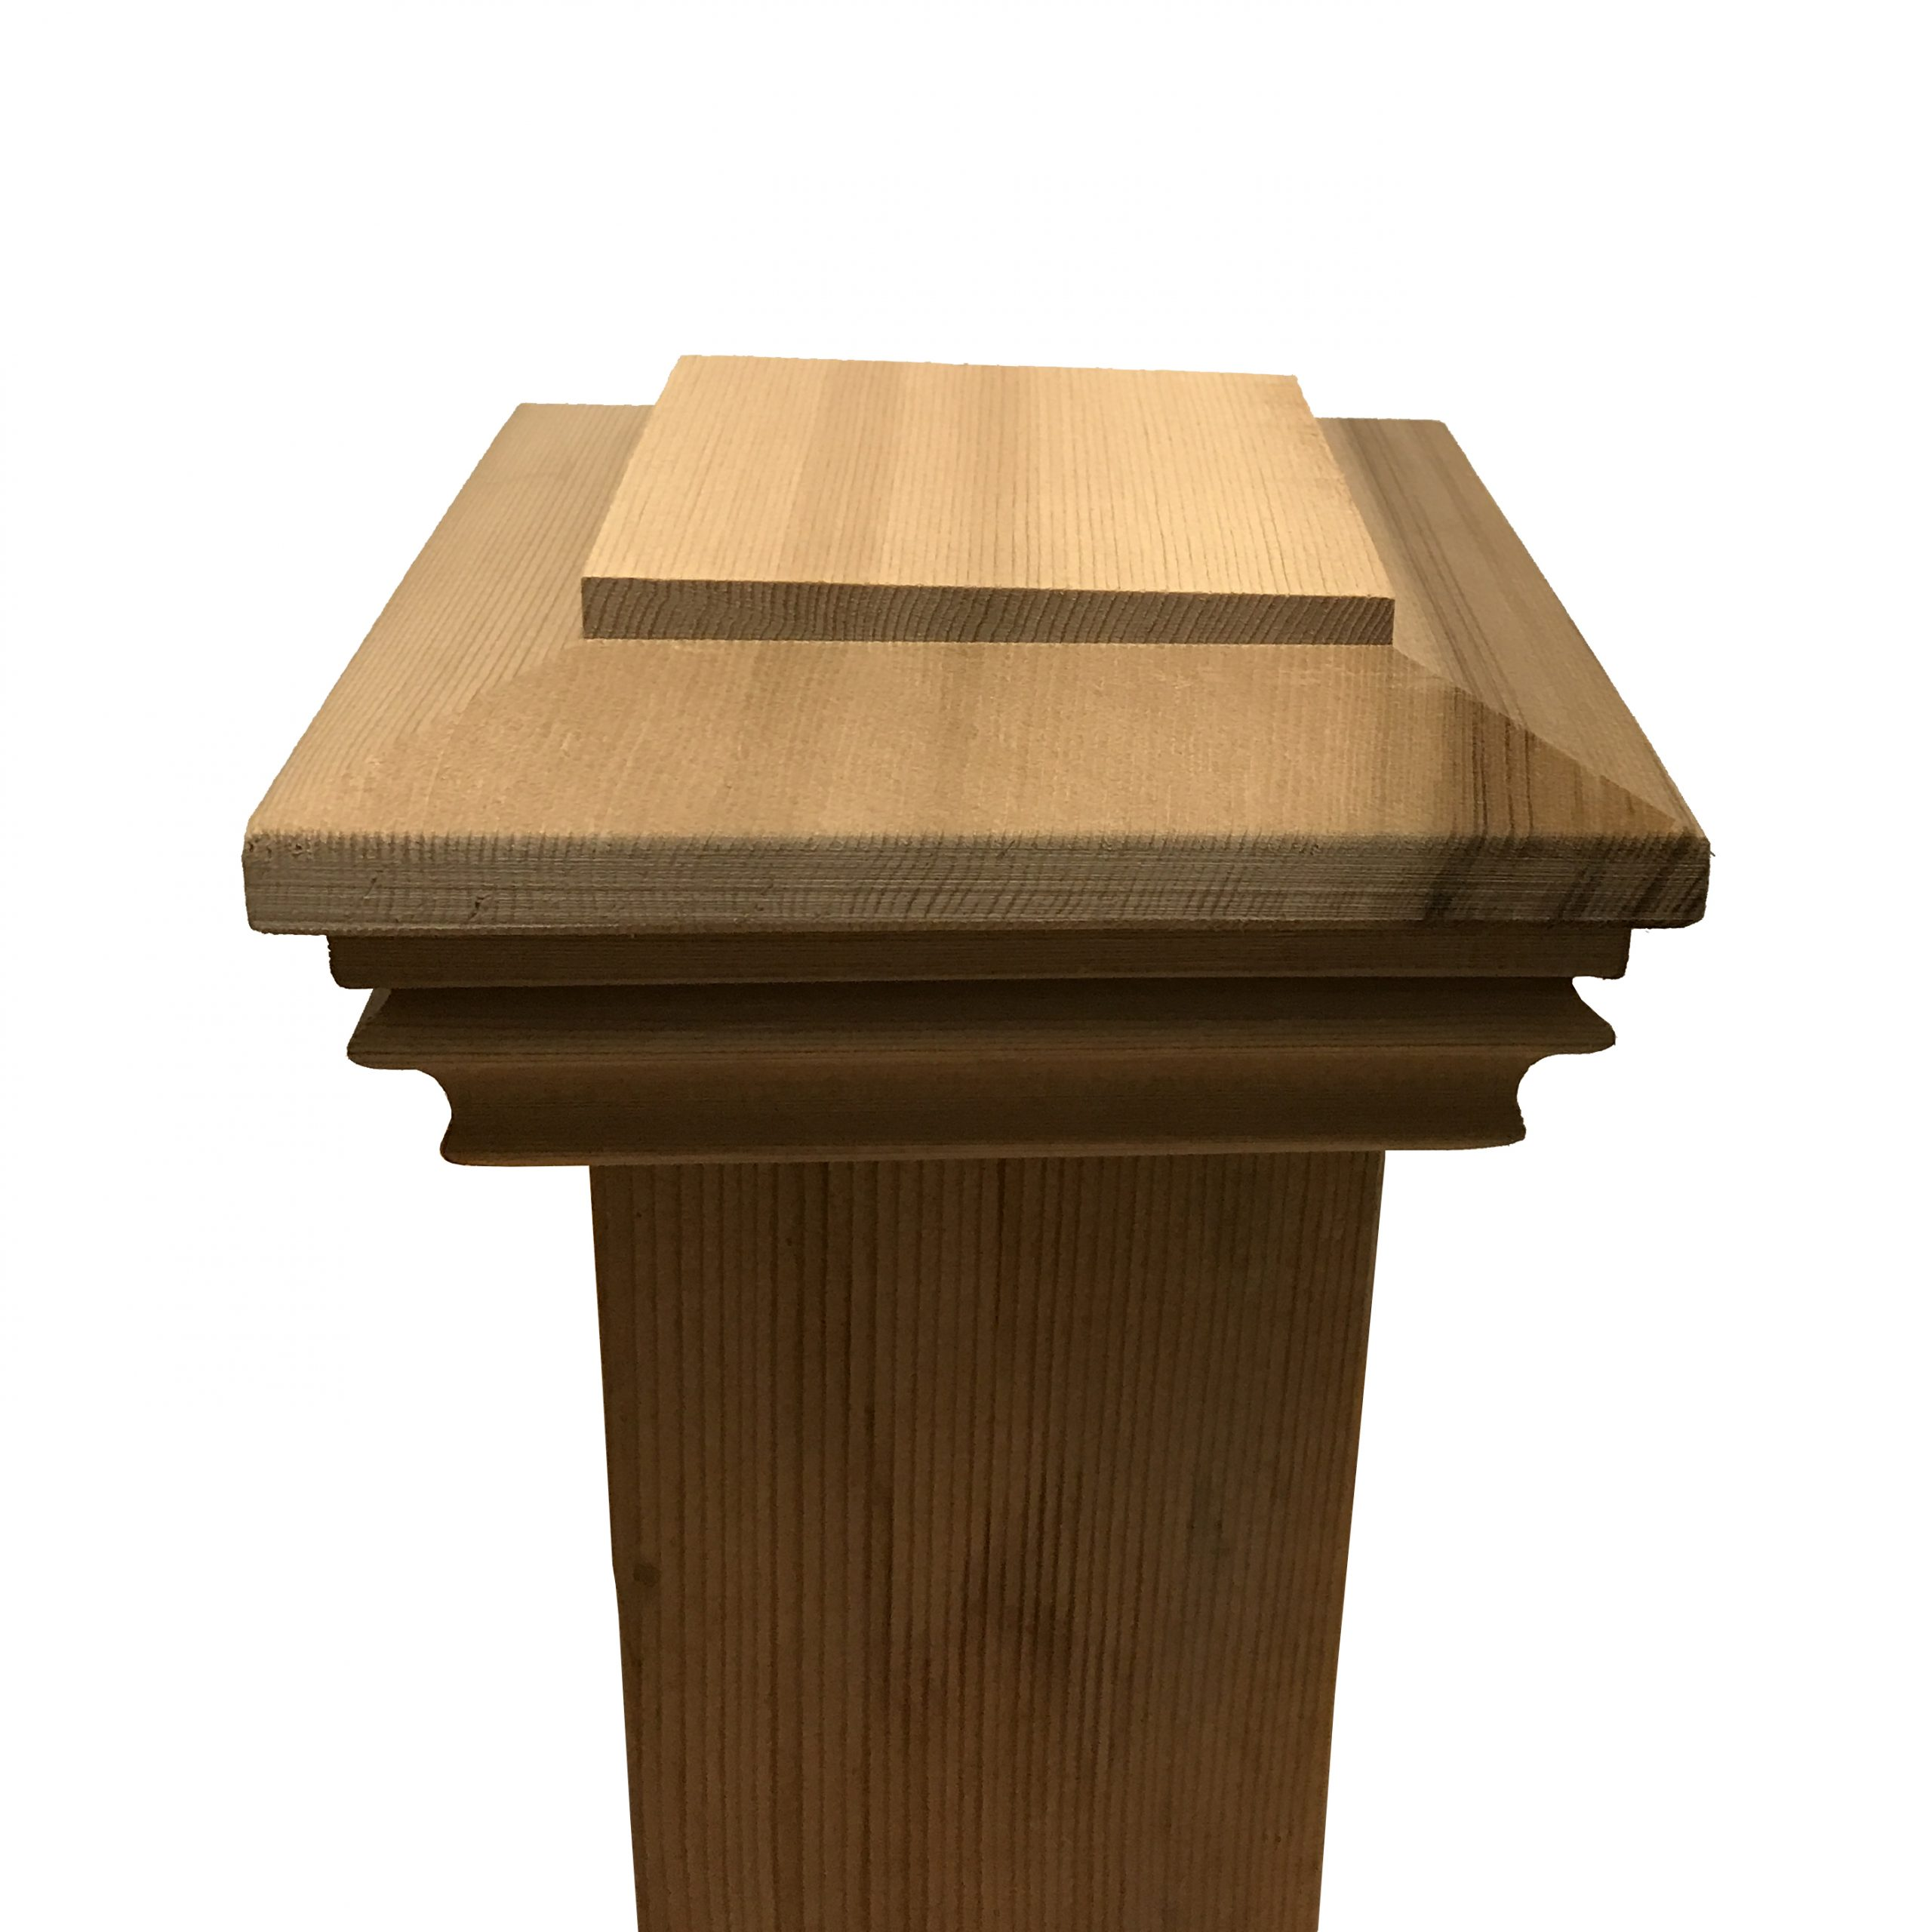 """Cedar Plateau Wood Post Cap for 3.5"""" x 3.5"""" Fence and Deck Posts"""